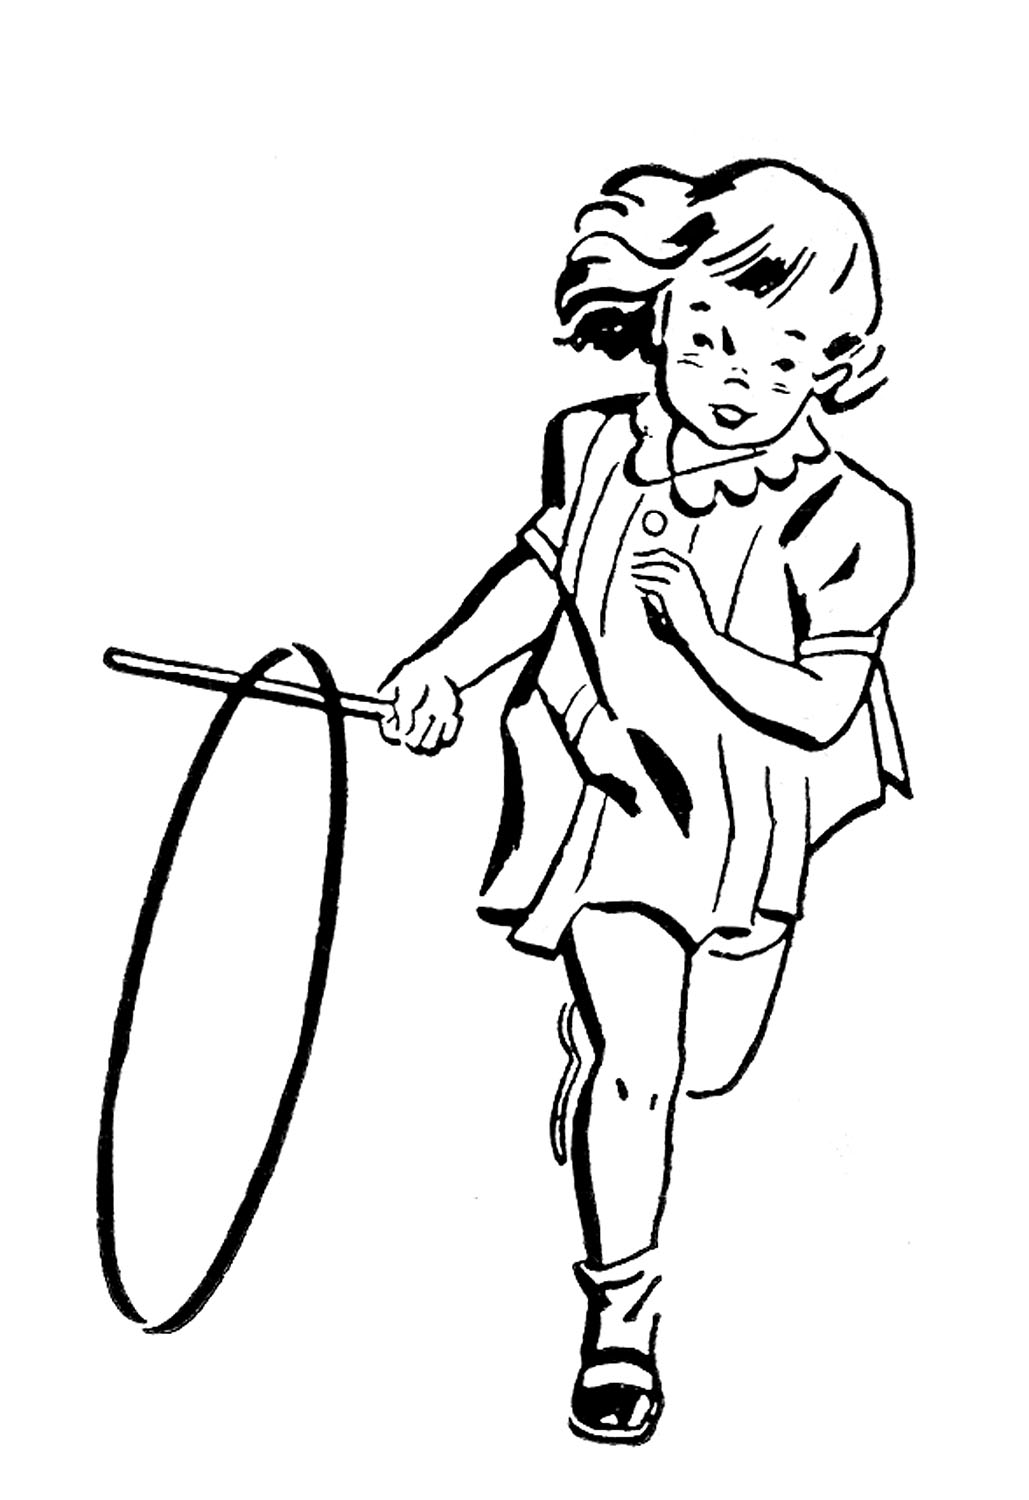 Free Hula Hoop Silhouette, Download Free Clip Art, Free Clip.